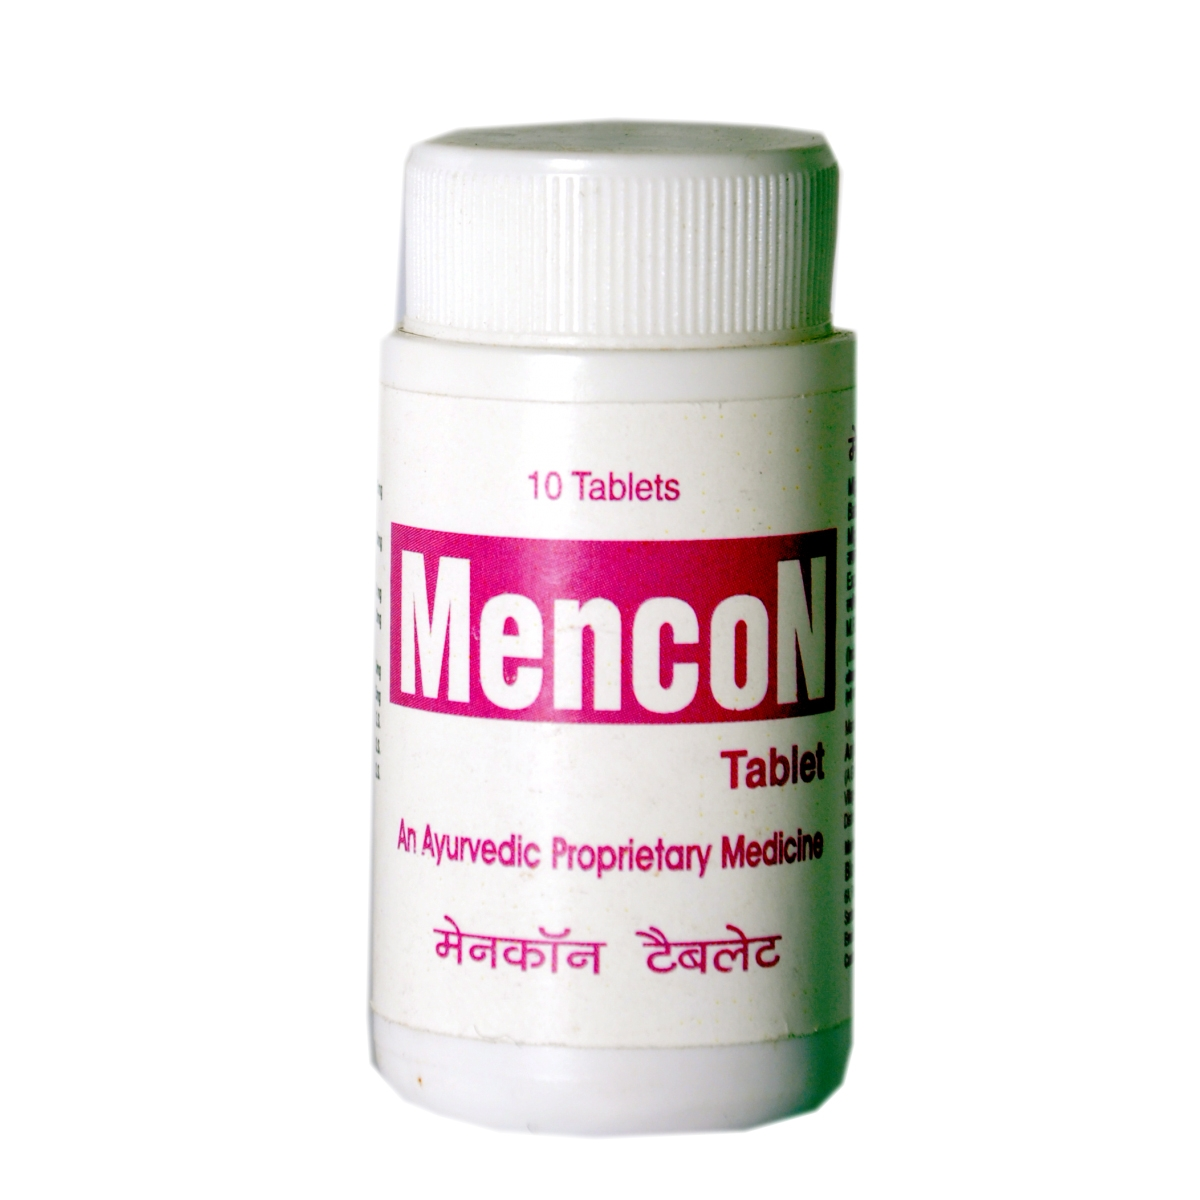 Mencon Tablet In Bastar